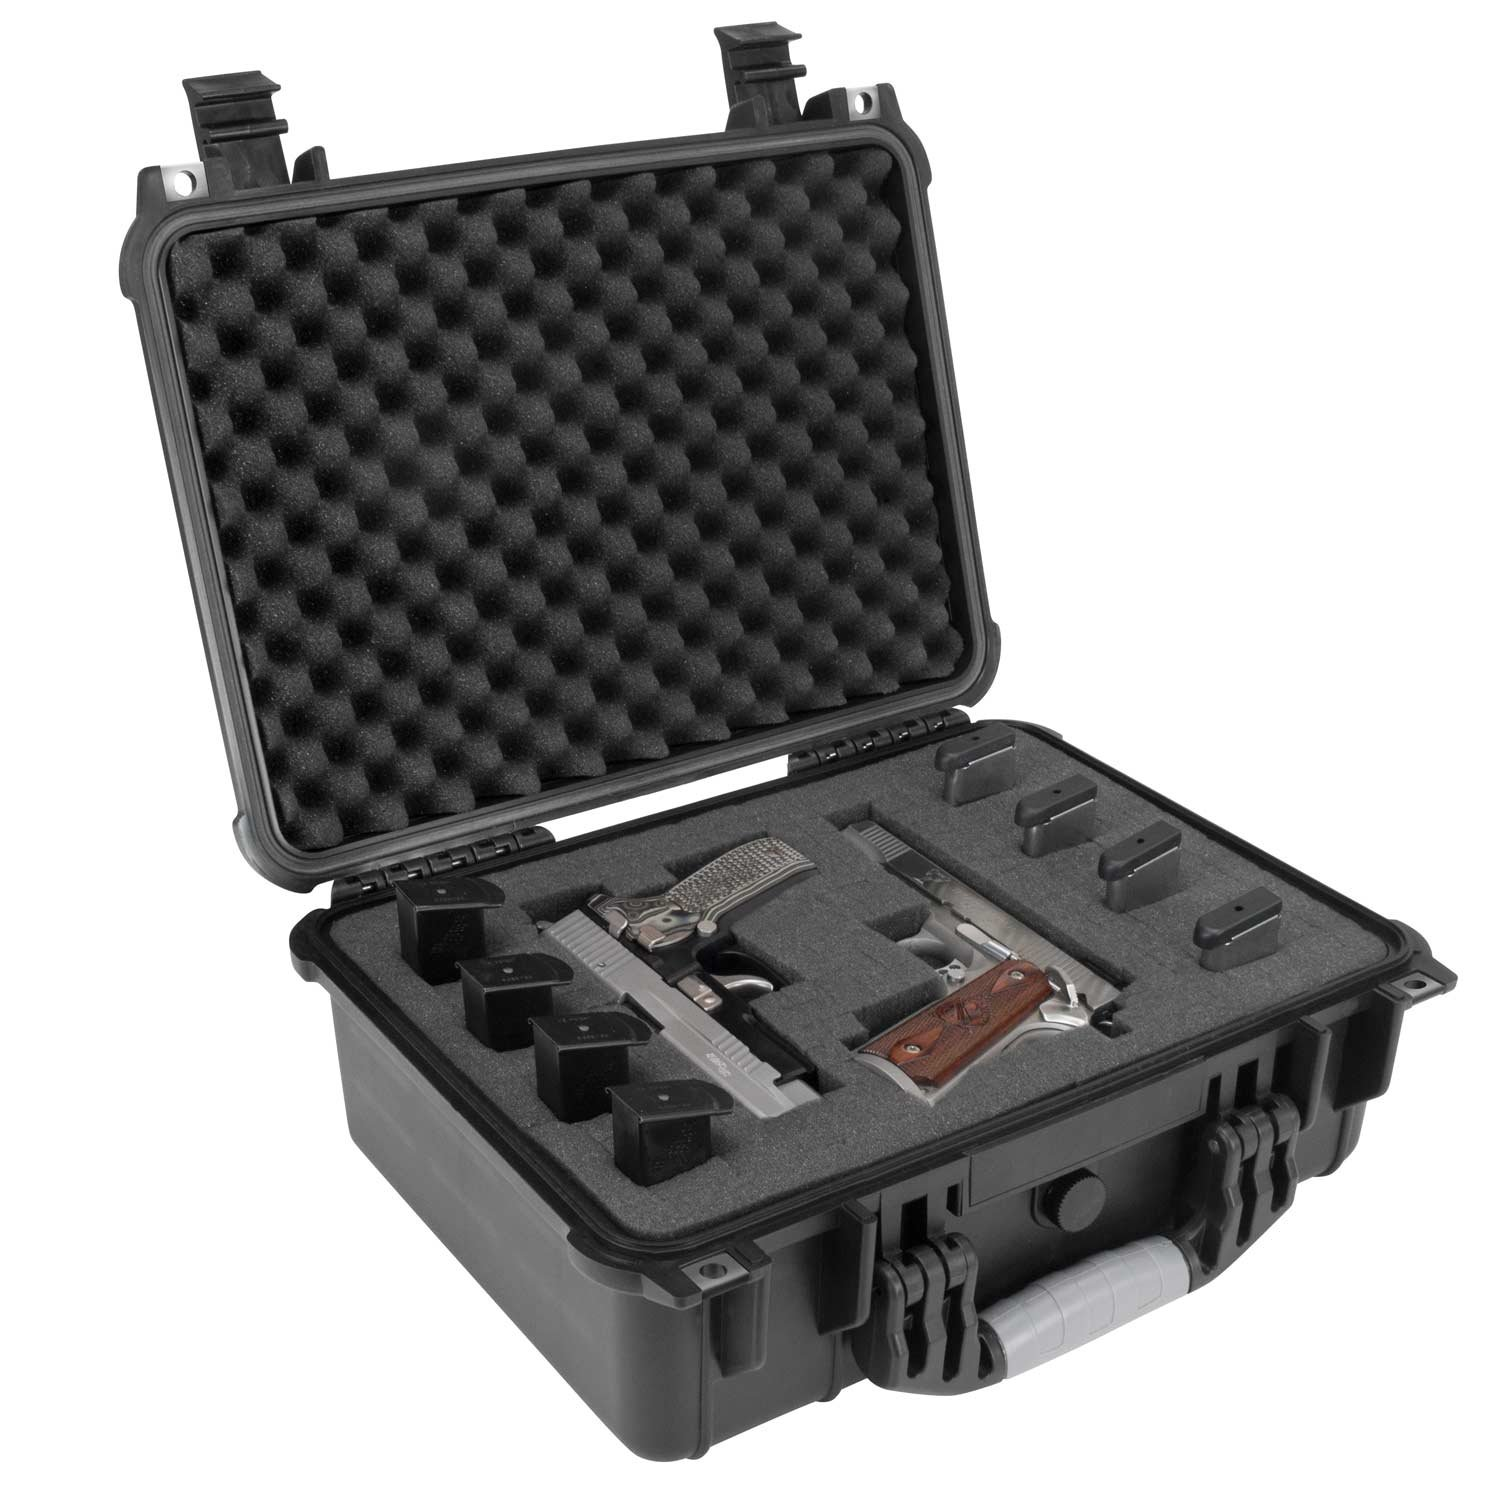 Elkton Outdoors Hard Gun Case: Fully Customizable Pistol Case: Holds 4 Handguns and 8 Magazines: Crush Resistant & Waterproof! by Elkton Outdoors (Image #4)